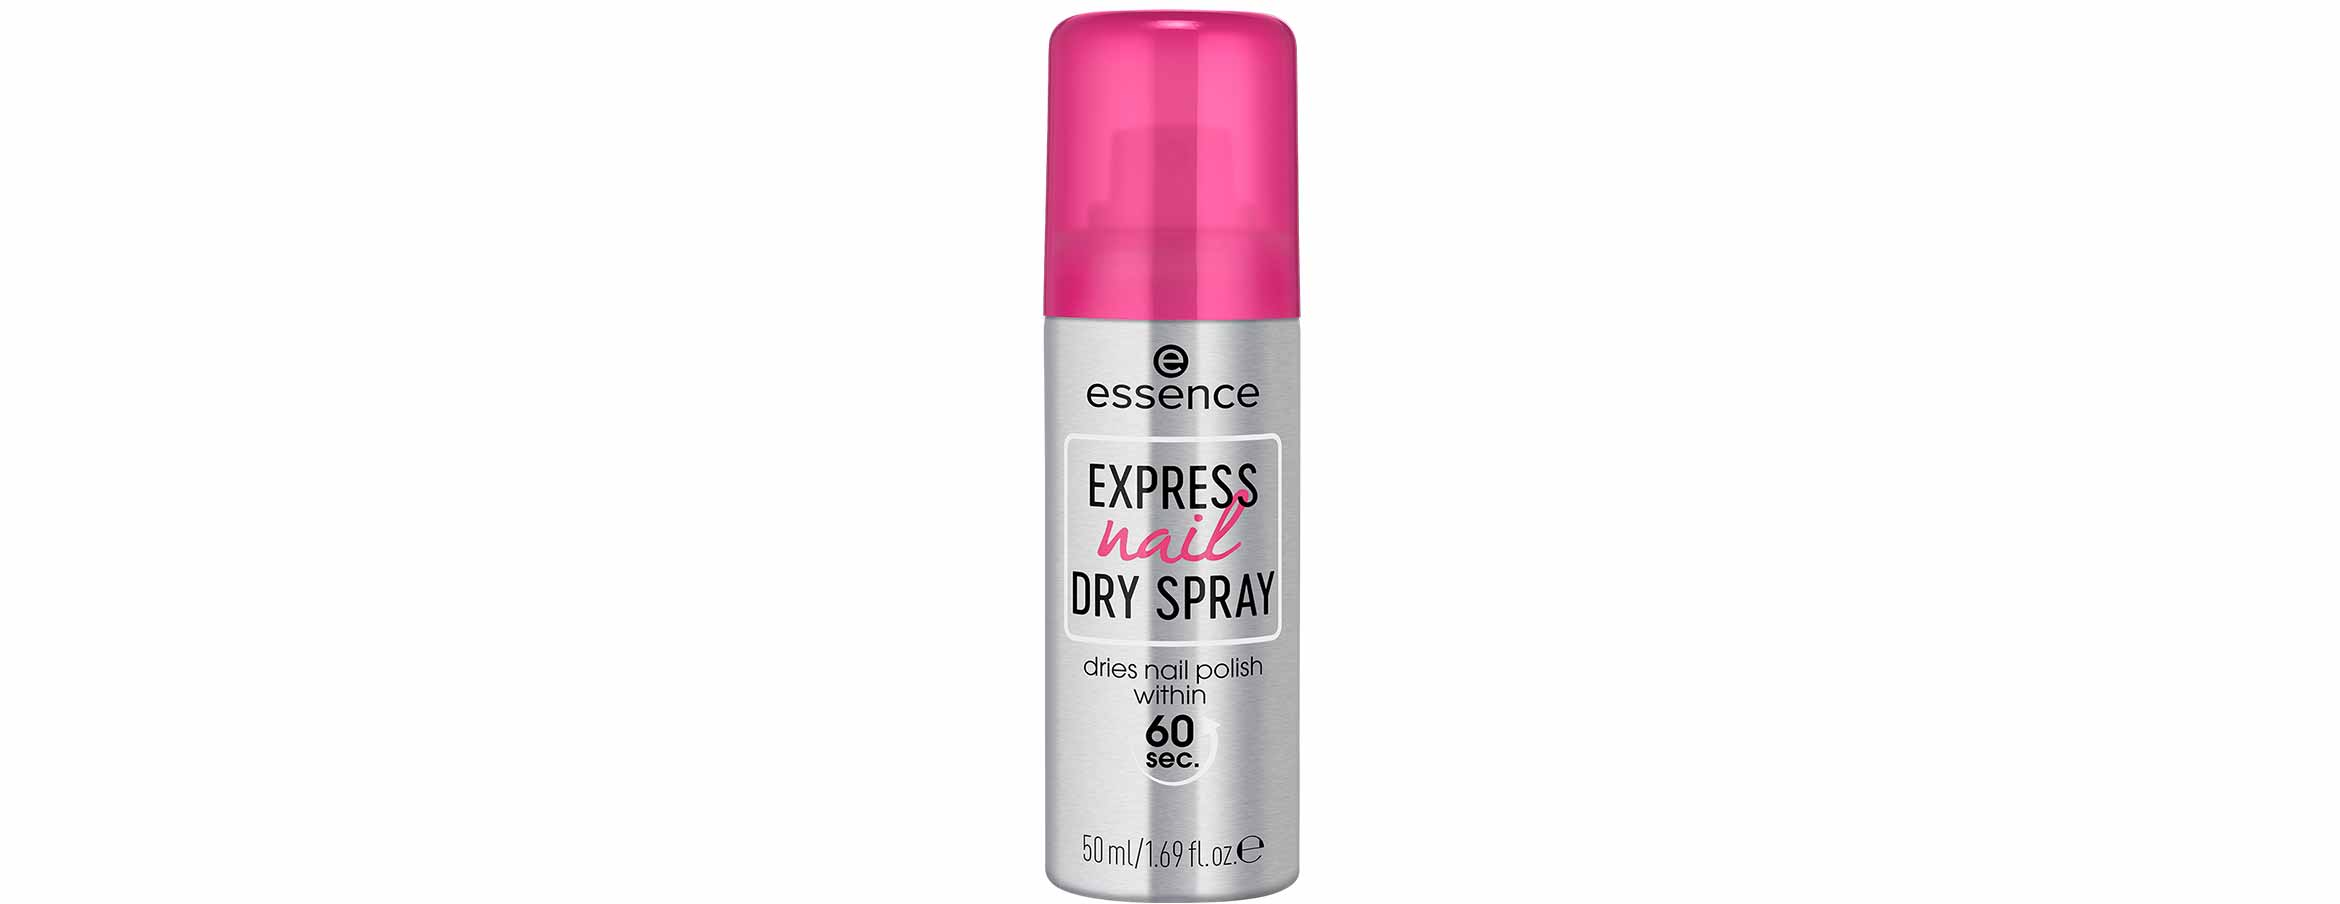 essence express nail dry spray